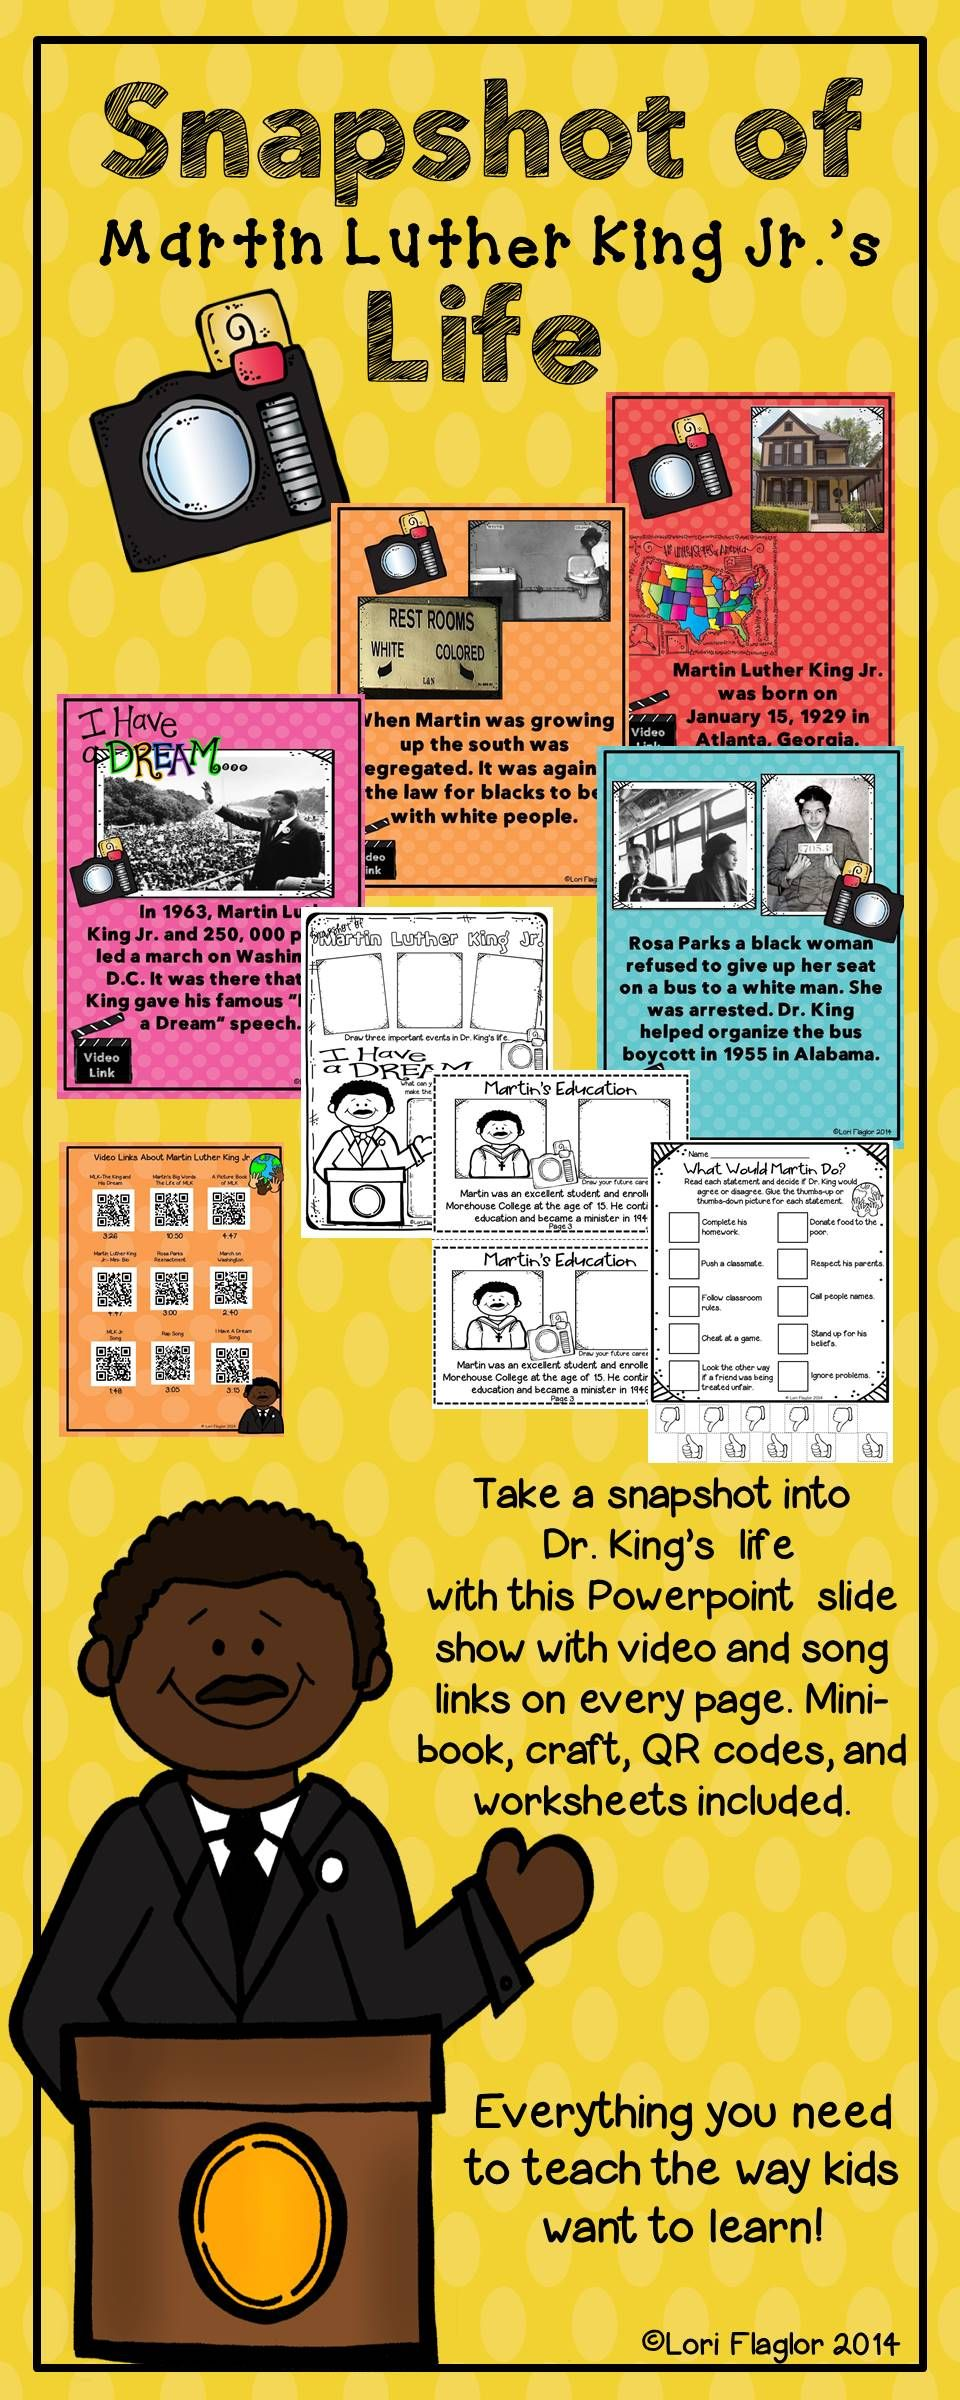 Everything you need to teach about Martin Luther King Jr. the way the children learn best!